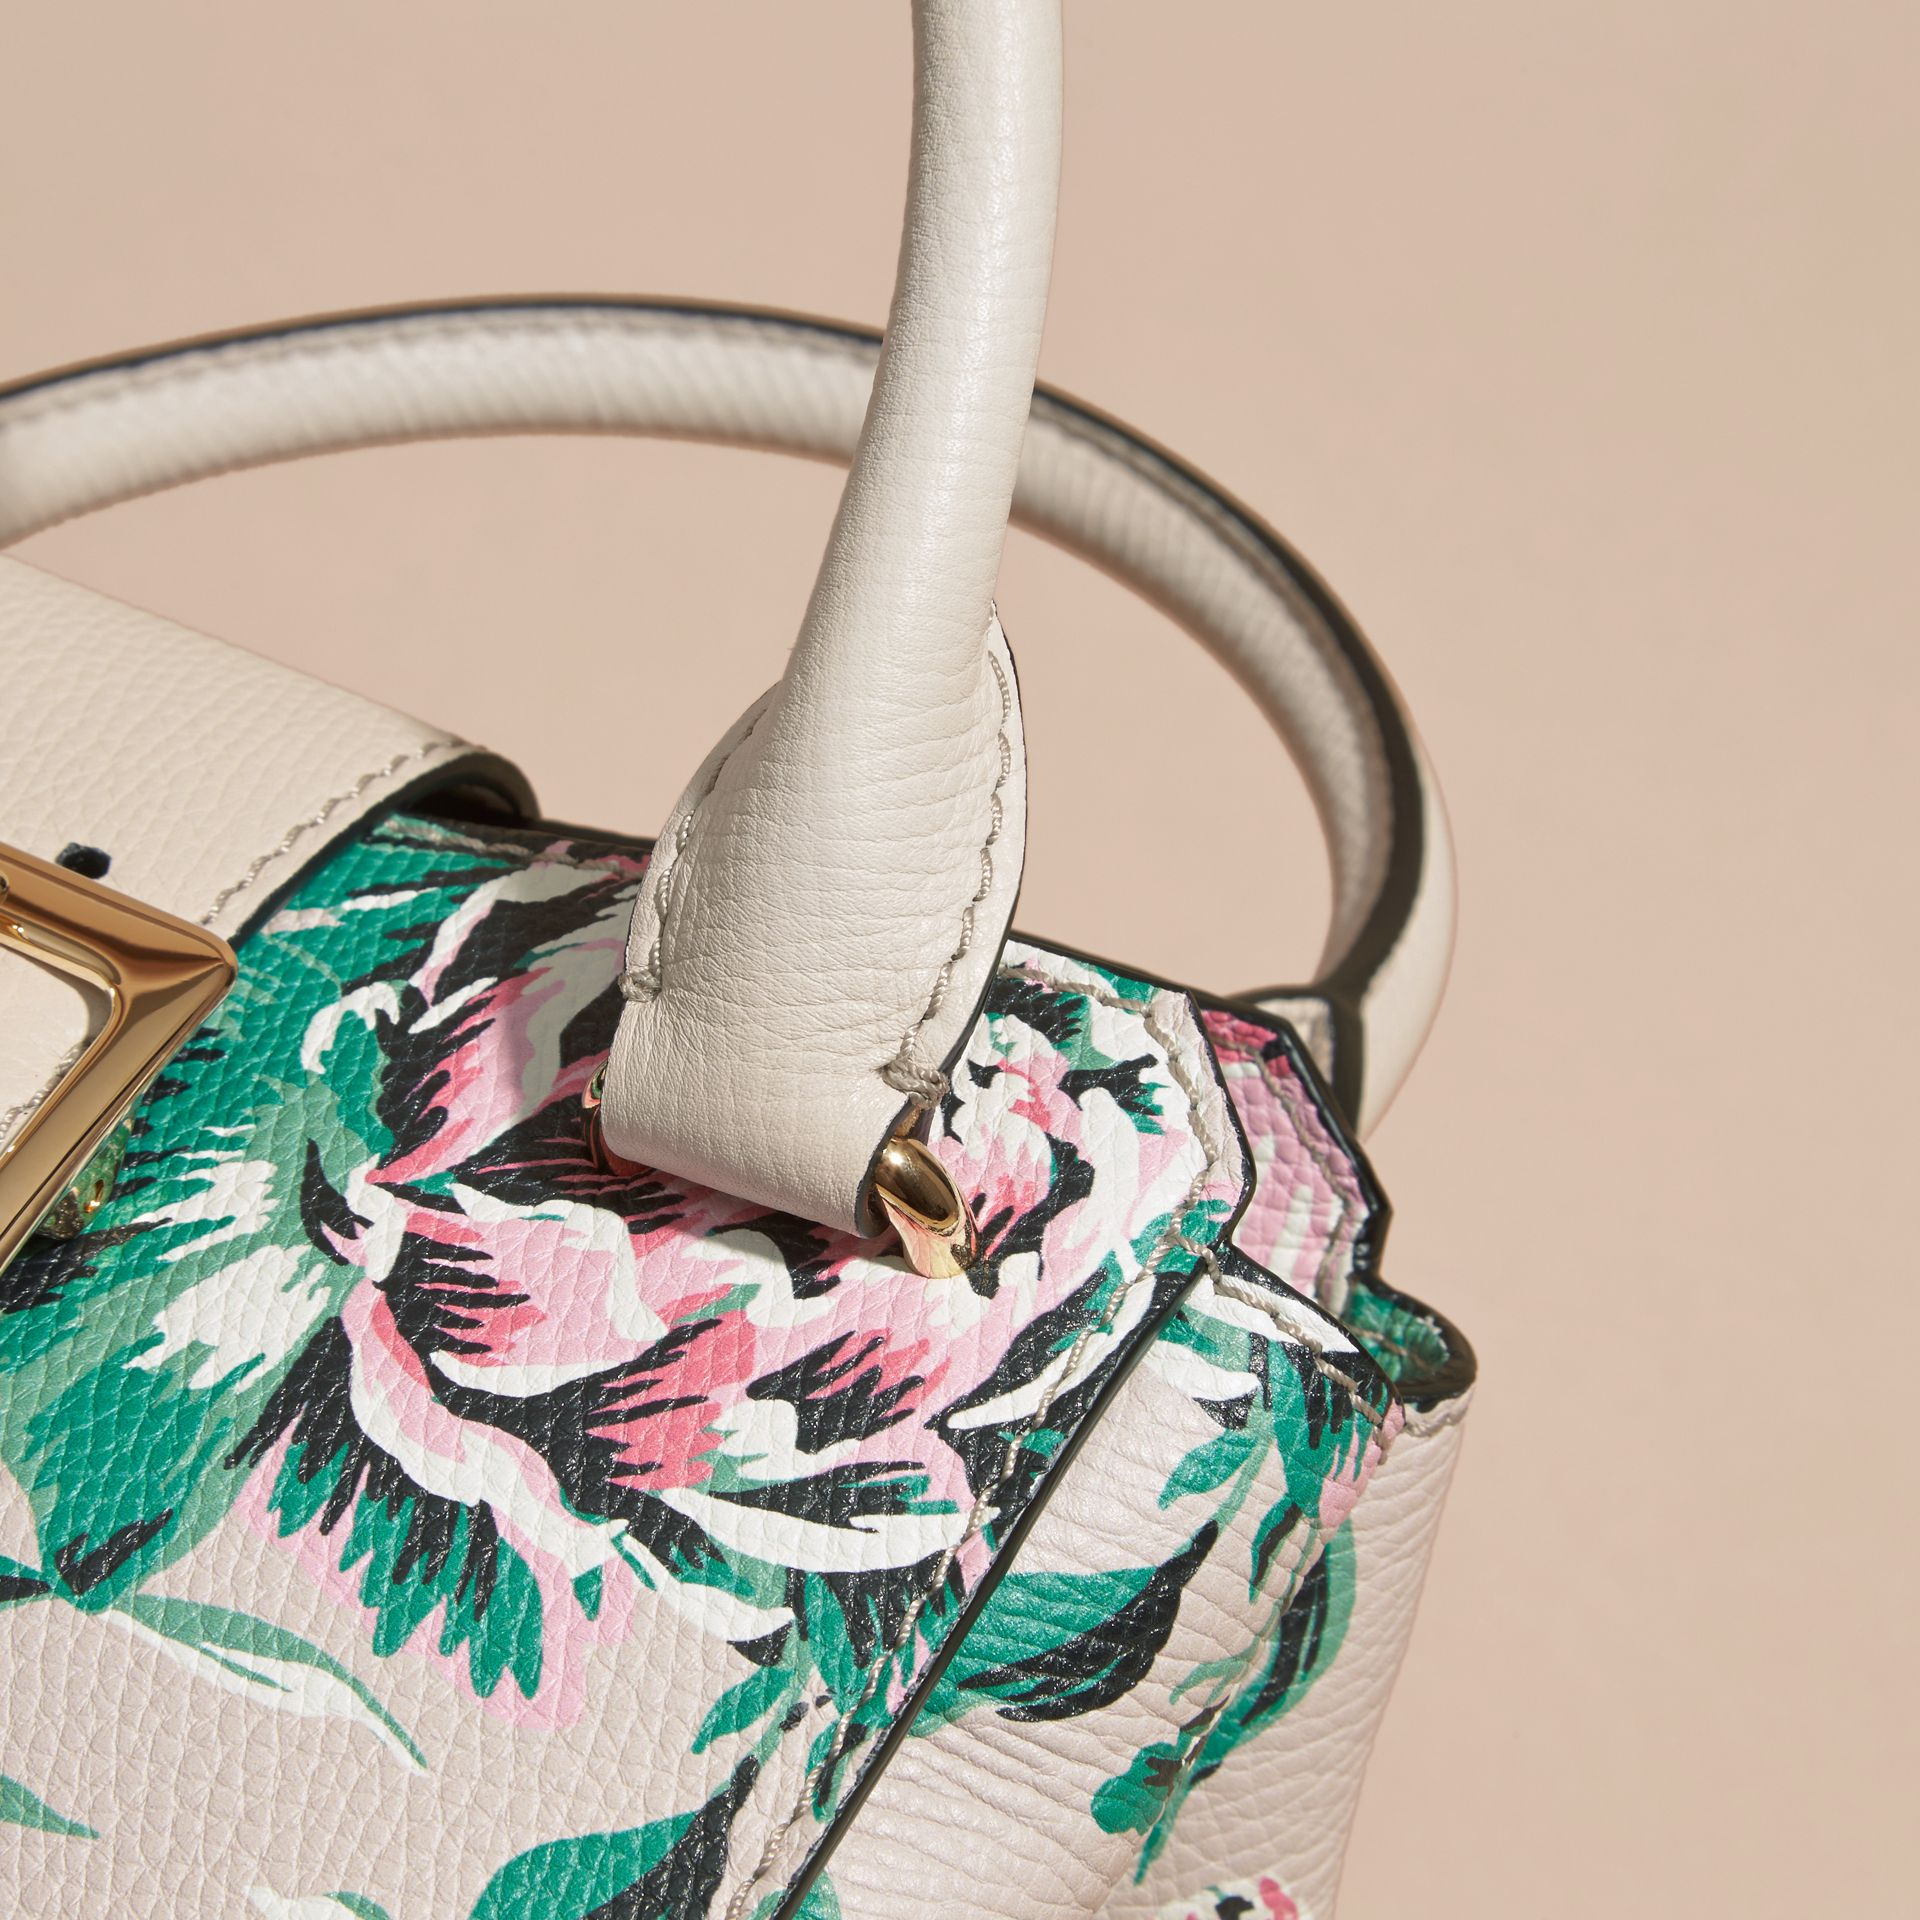 Natural/emerald green The Small Buckle Tote in Peony Rose Print Leather Natural/emerald Green - gallery image 7